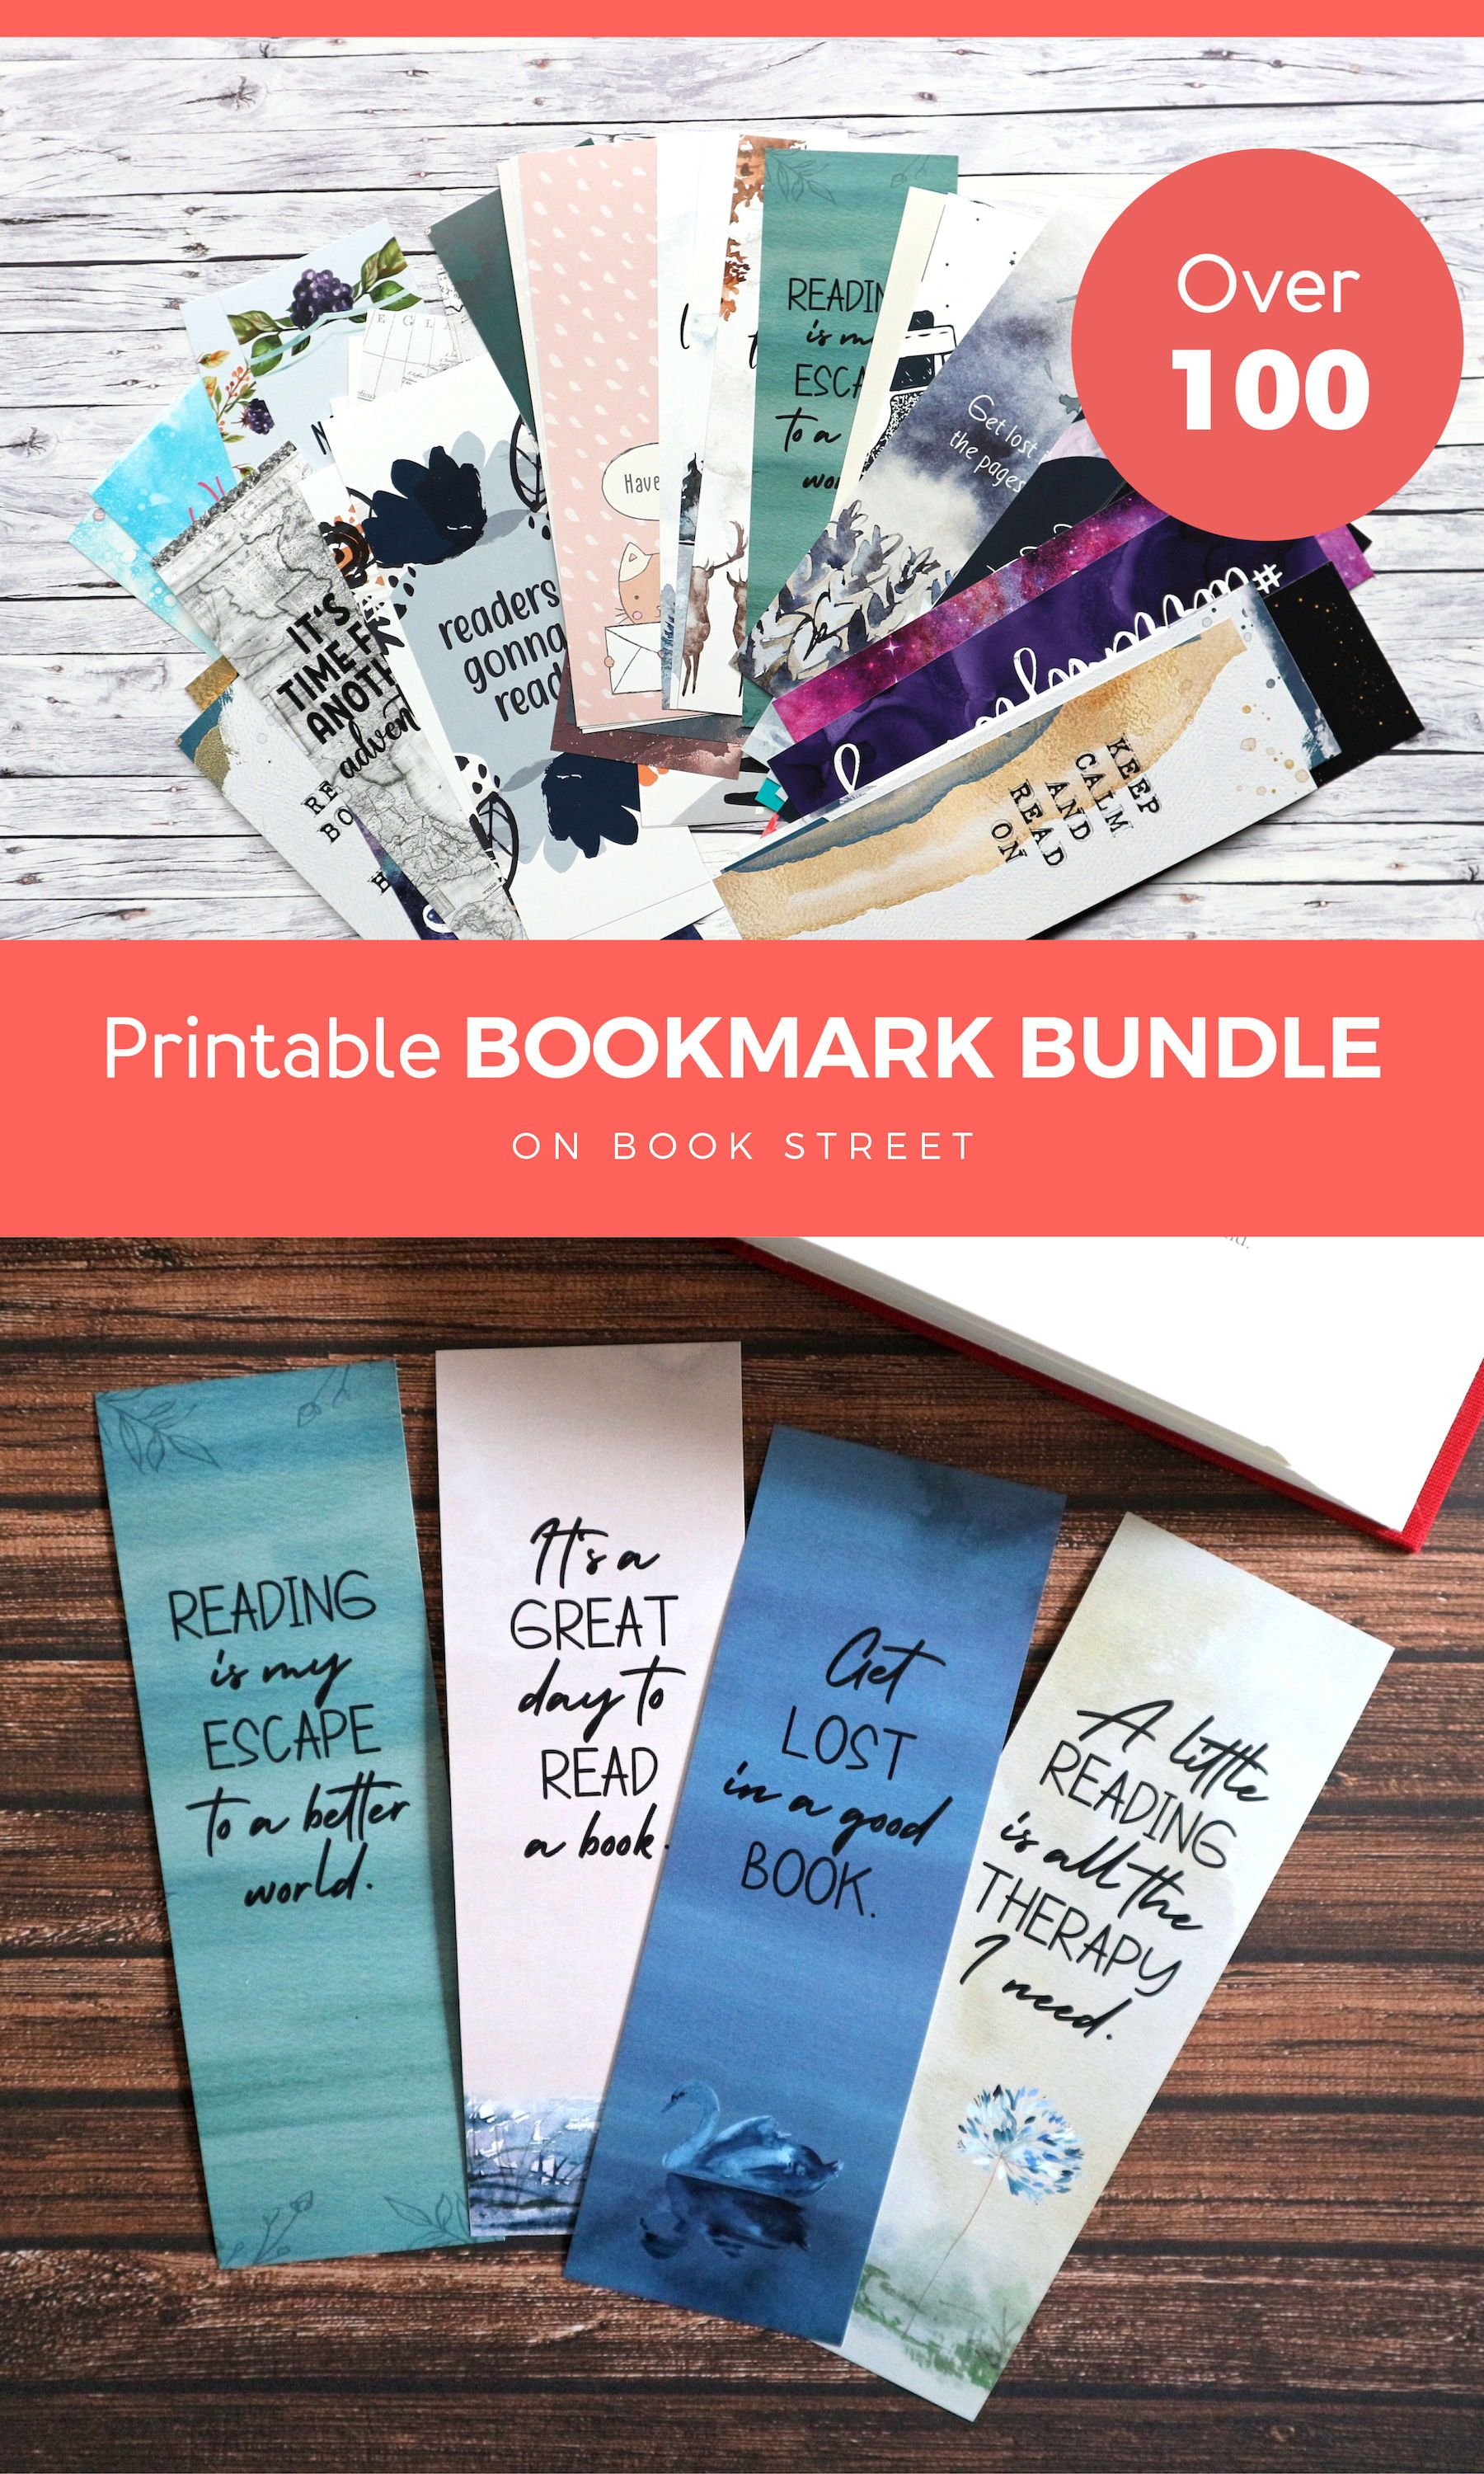 Printable Bookmark Bundle Book Club Gifts Quotes Bookmarks For Etsy Book Lovers Gifts Diy Bookclub Gifts Bookmarks For Books